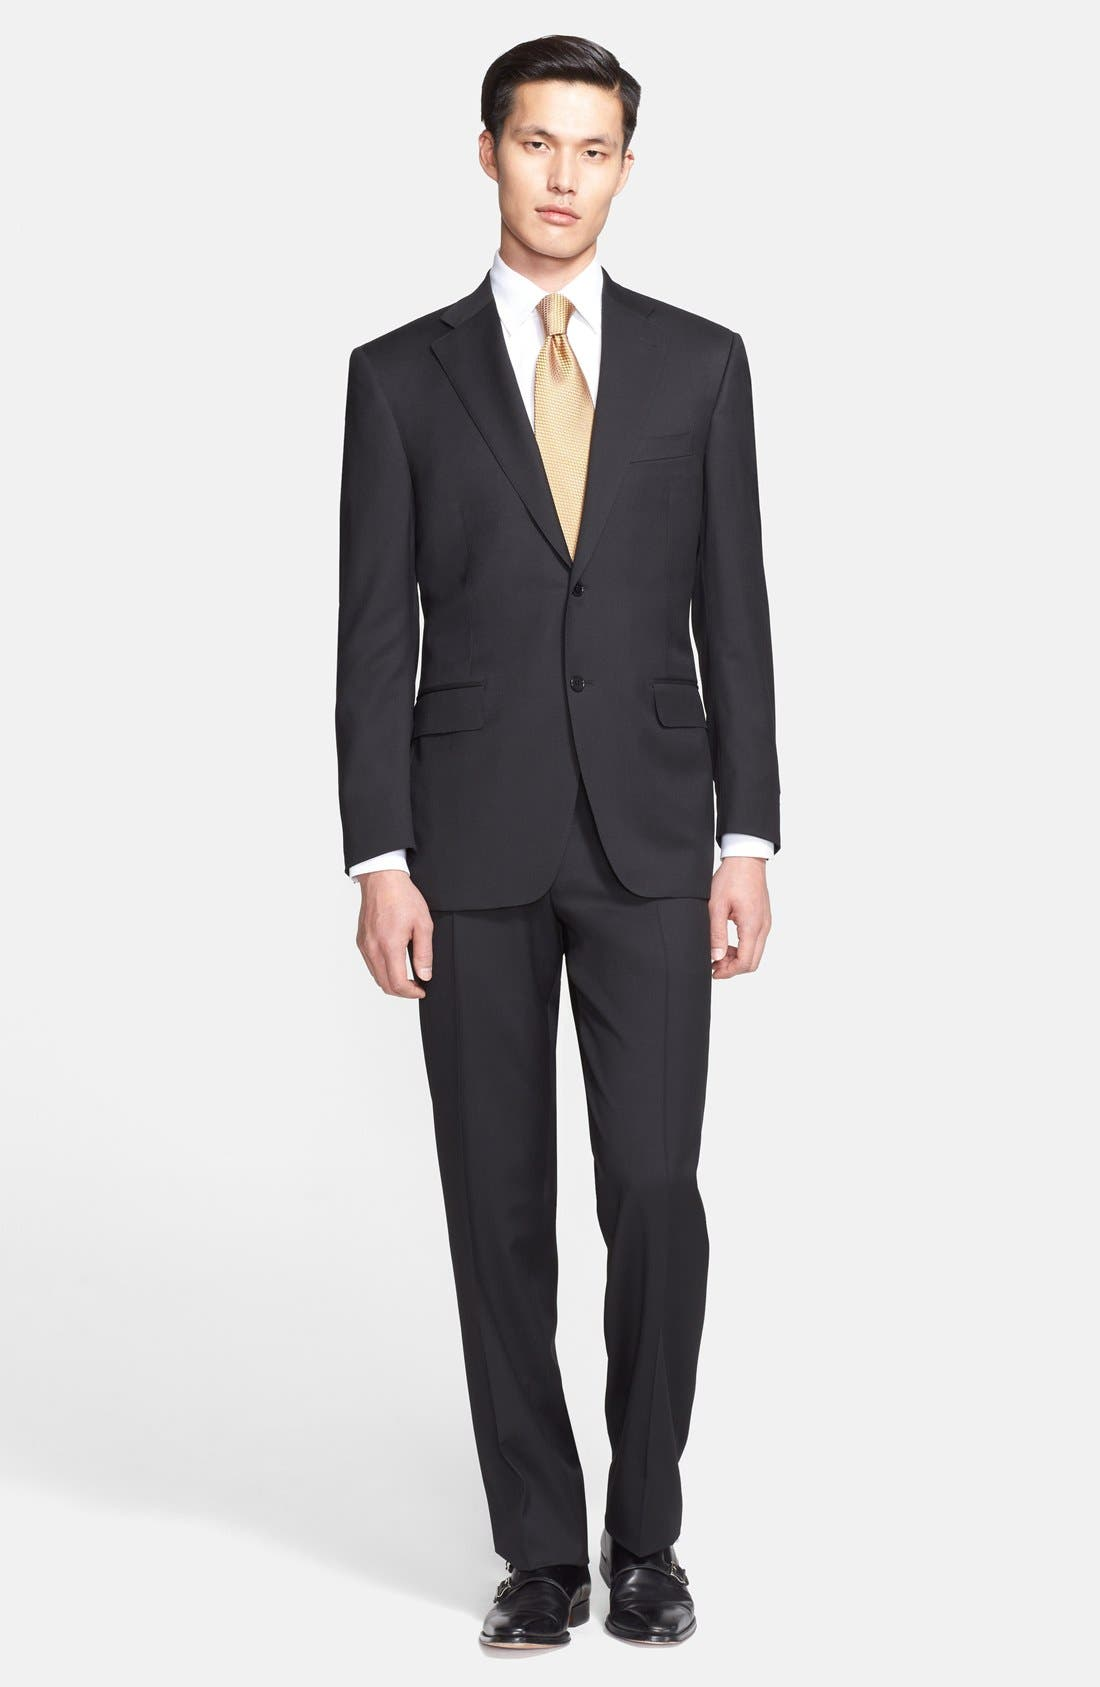 Alternate Image 1 Selected - Canali Trim Fit Solid Wool Suit